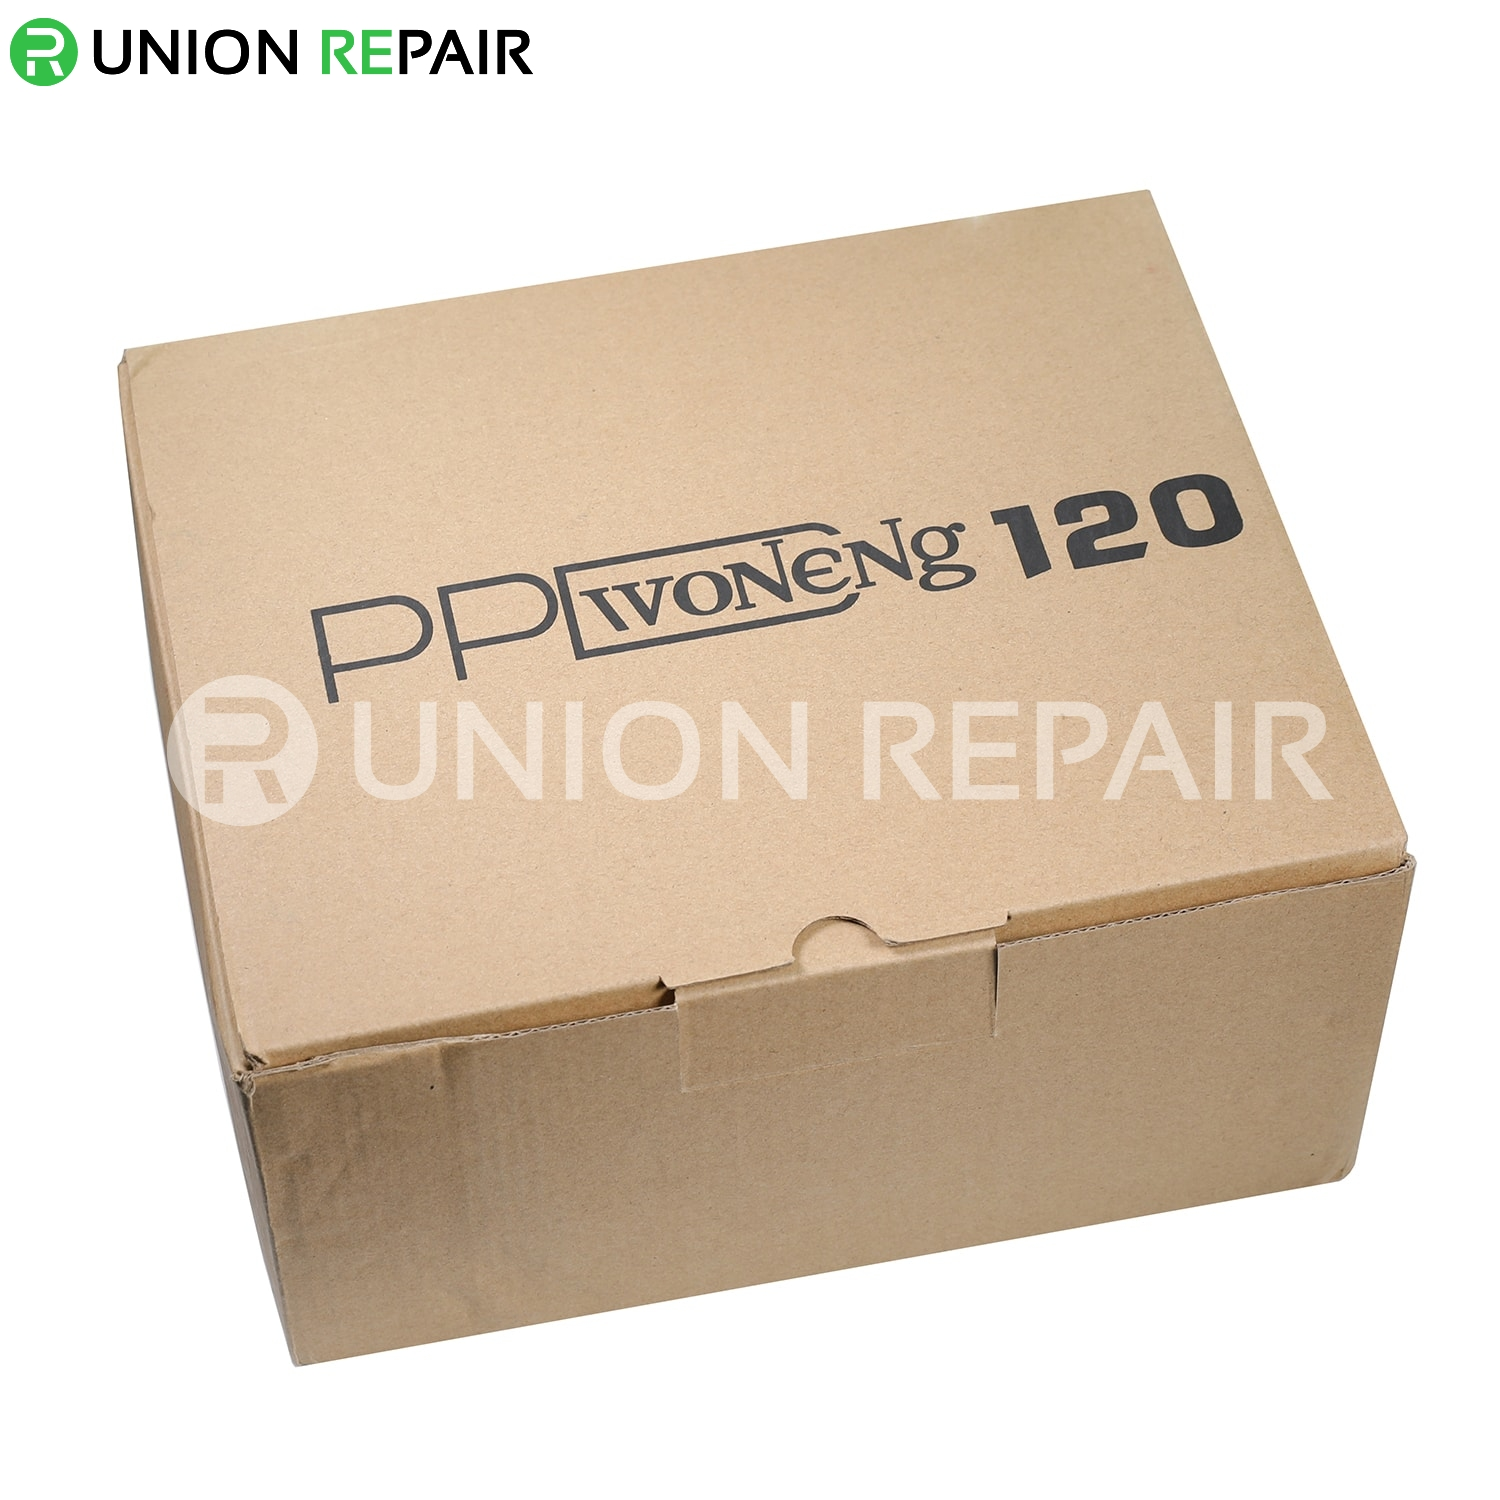 PPD120L Intelligent Disassembly Welding Platform